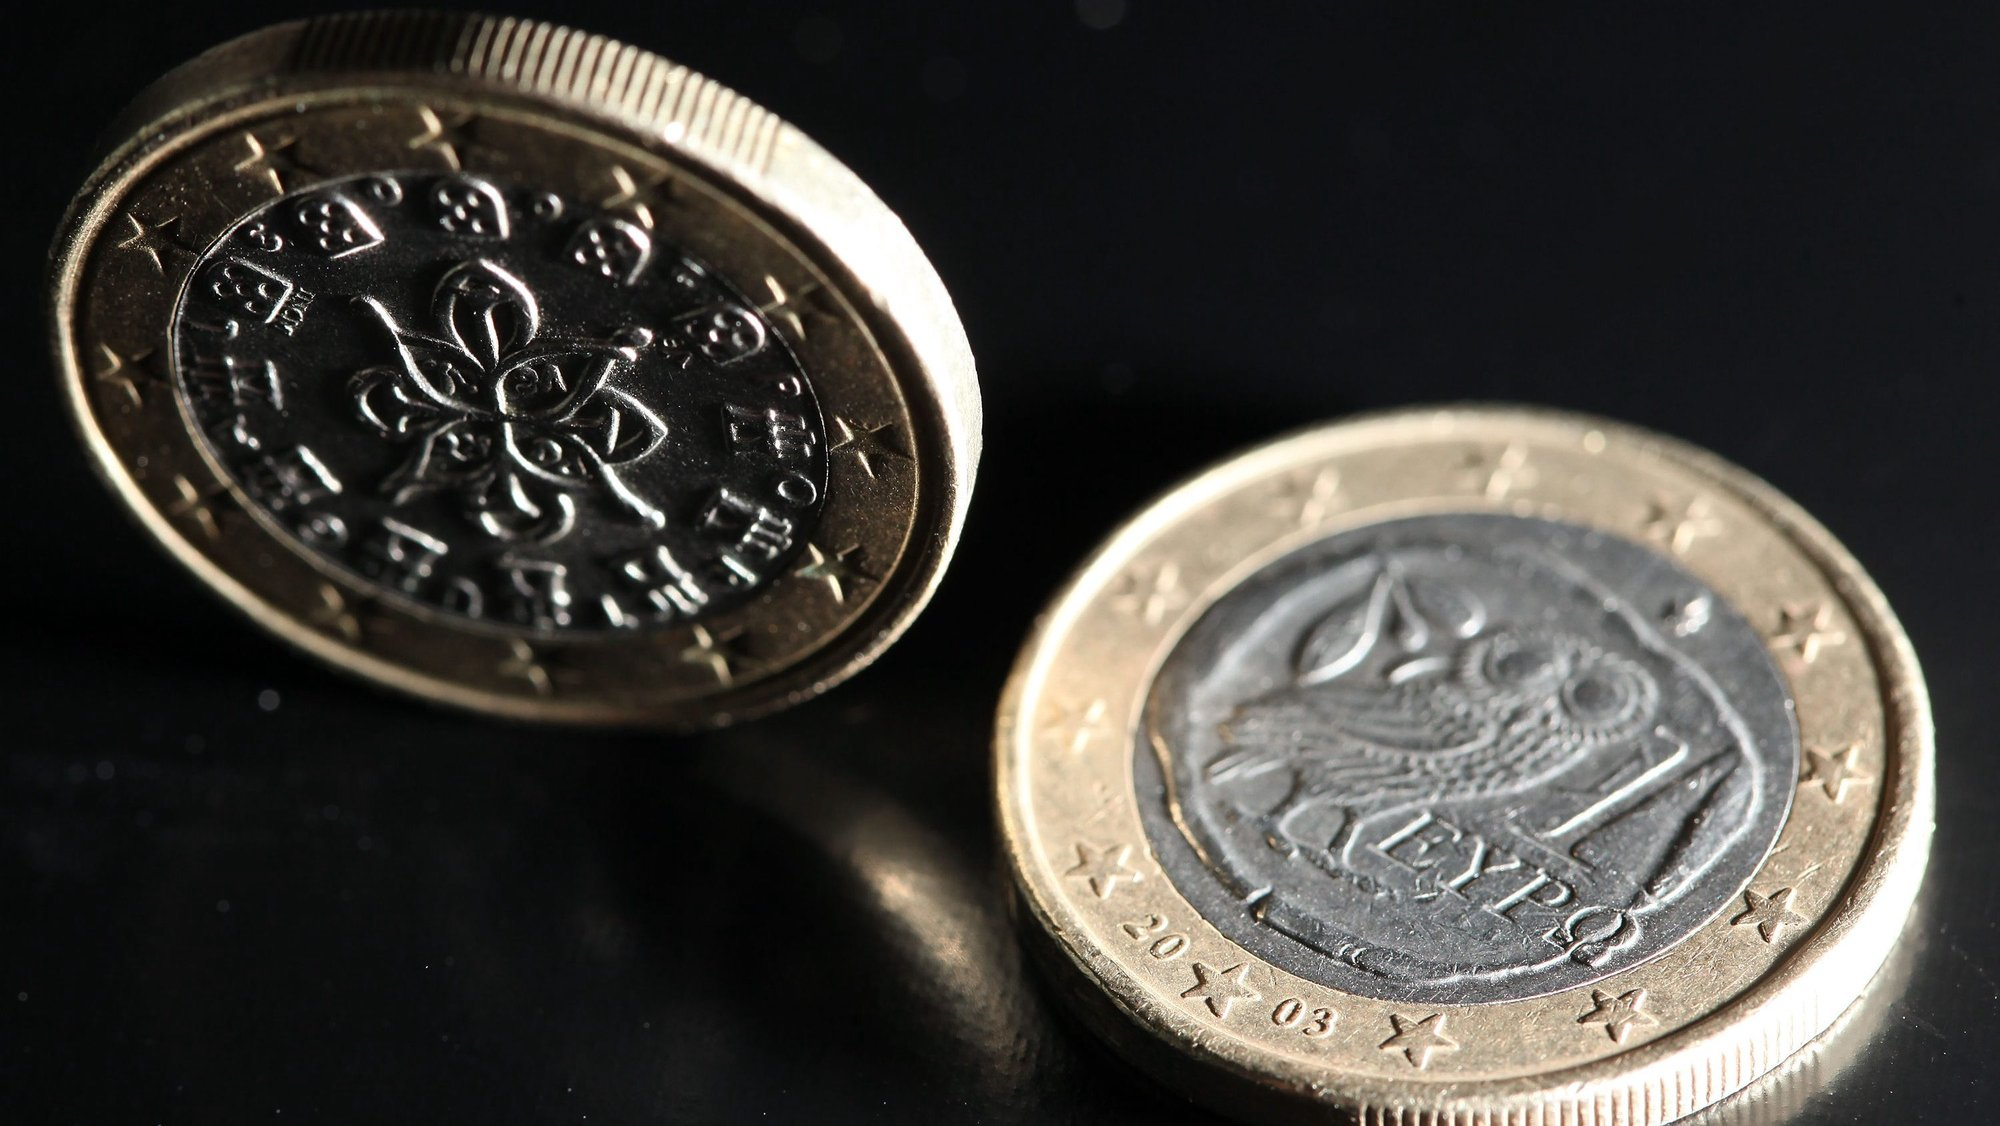 epa02736411 An illustration photo shows two 1-Euro coins with a national Portuguese (L) and a national Greek backside (R), arranged on a table in Cologne, Germany, 16 May 2011. European Union Economy Commissioner Olli Rehn criticized Greece on 16 May for its slow pace of reform, hours before eurozone finance ministers were due to discuss the country's debt problems at a meeting in Brussels. Rehn also called upon Germany to support the 78-billion-euro rescue package for Portugal, which the EU finance ministers were due to decide about at their meeting in Brussels.  EPA/OLIVER BERG